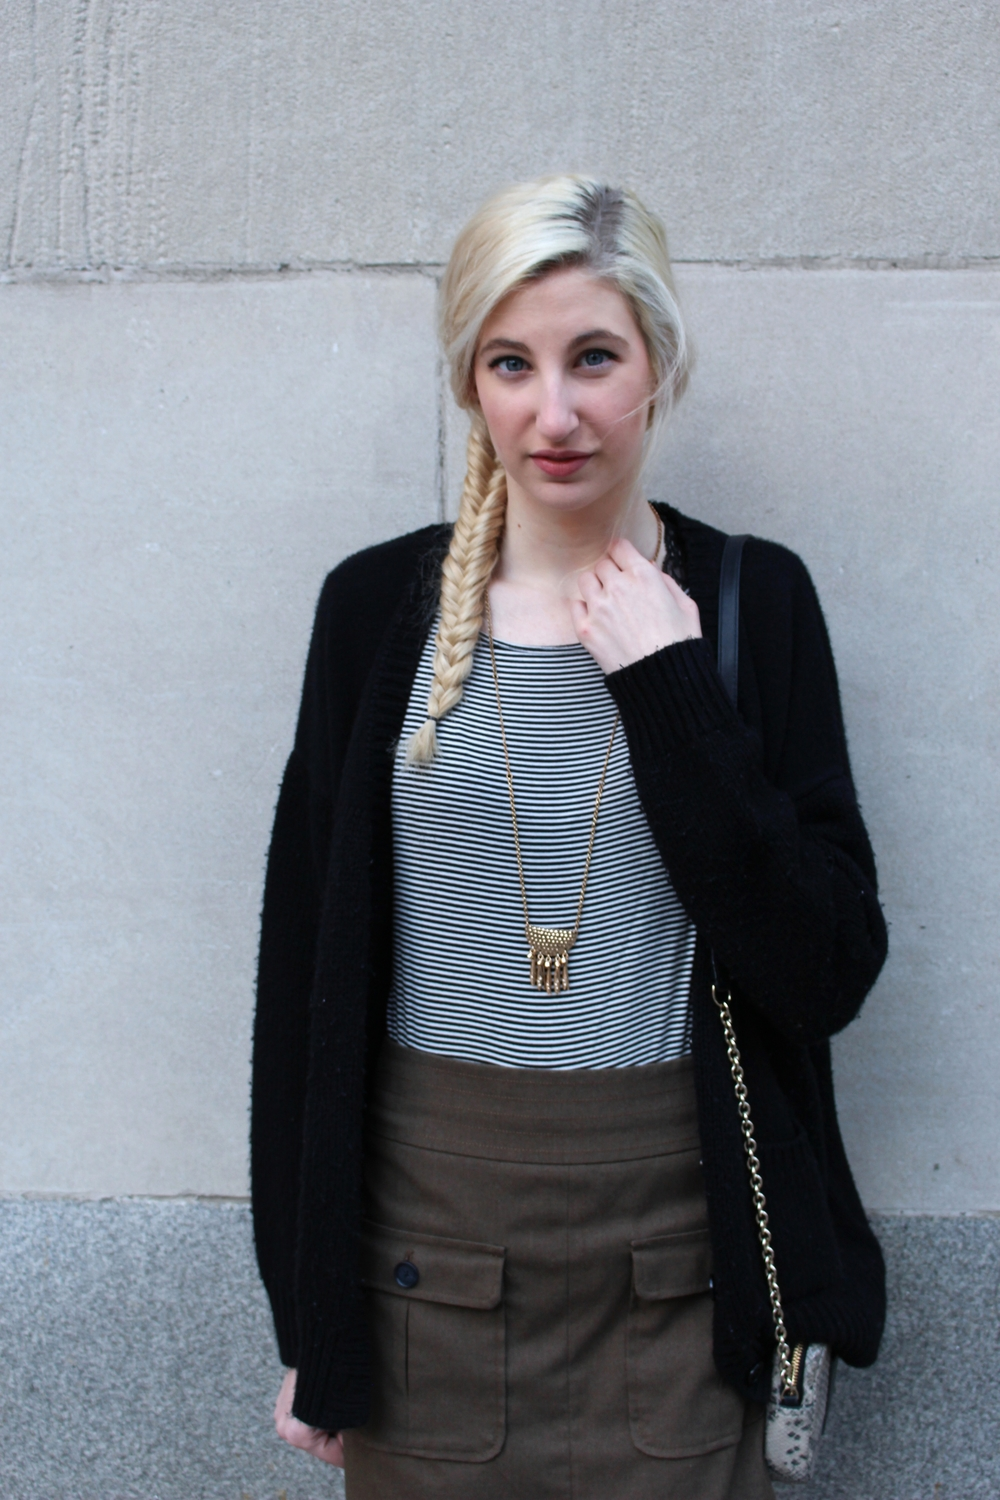 LOFT striped long sleeve knit top, LOFT army green skirt, LOFT gold fringe necklace, Forever21 oversized cardigan, H&M tights, LOFT polka dot d'orsay flats